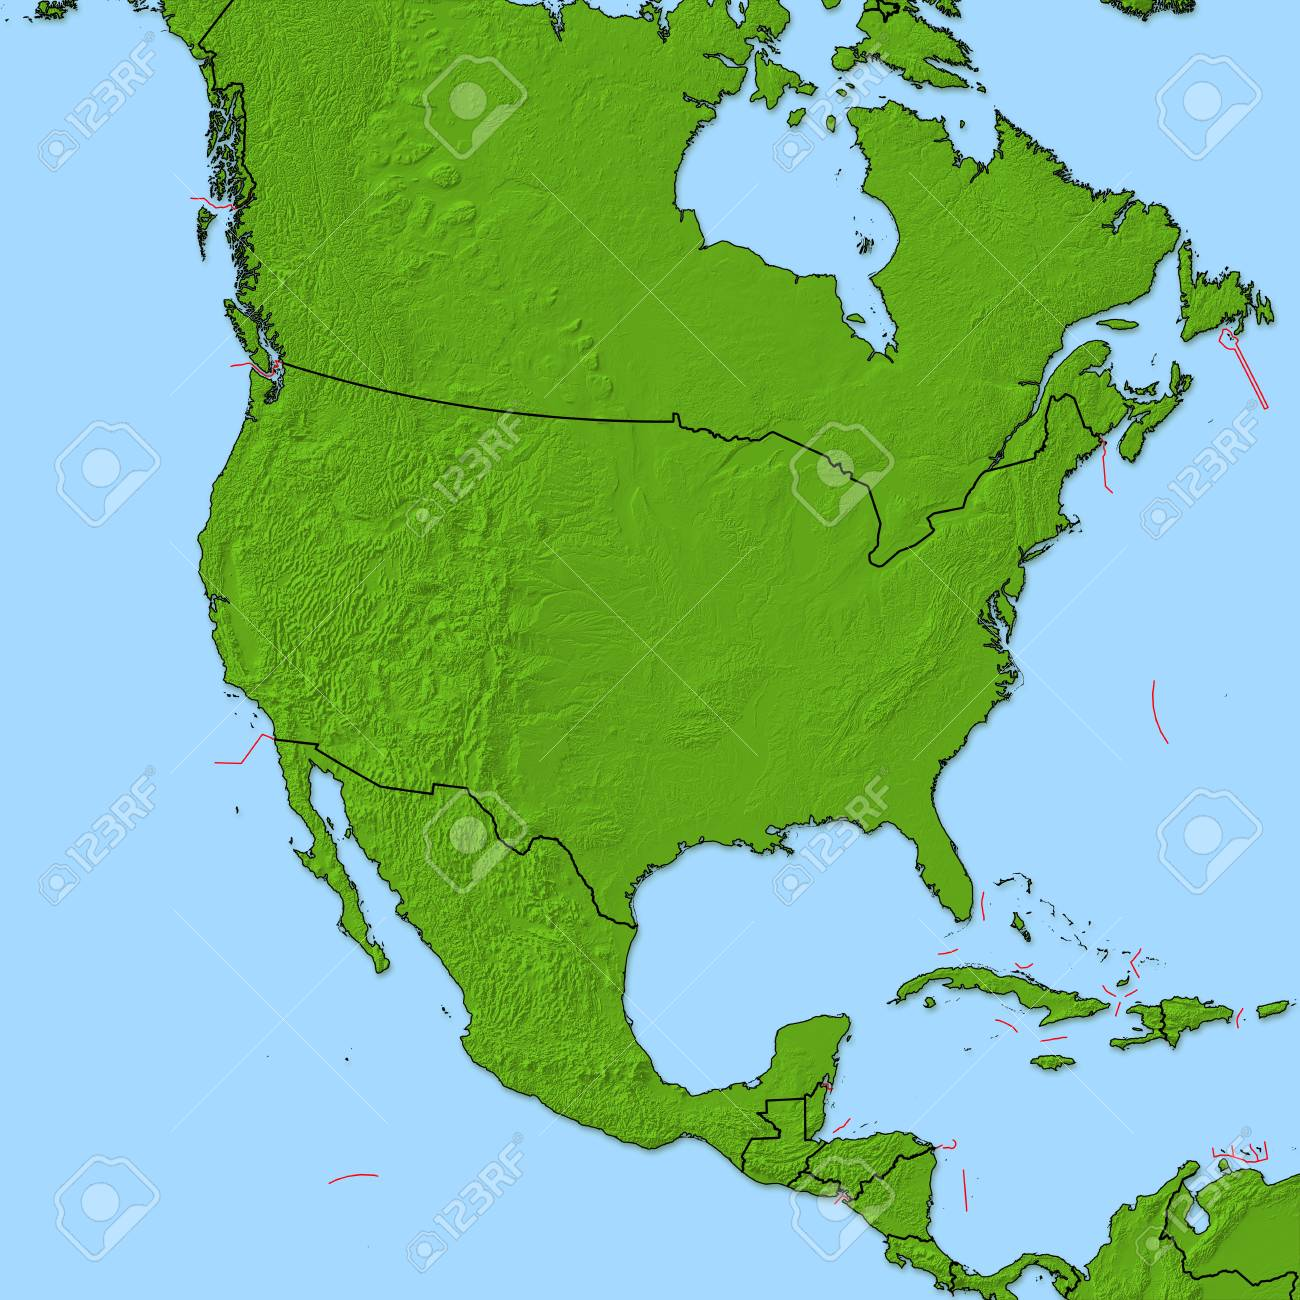 Relief Map Of United States.Relief Map Of United States And Nearby Countries Stock Photo